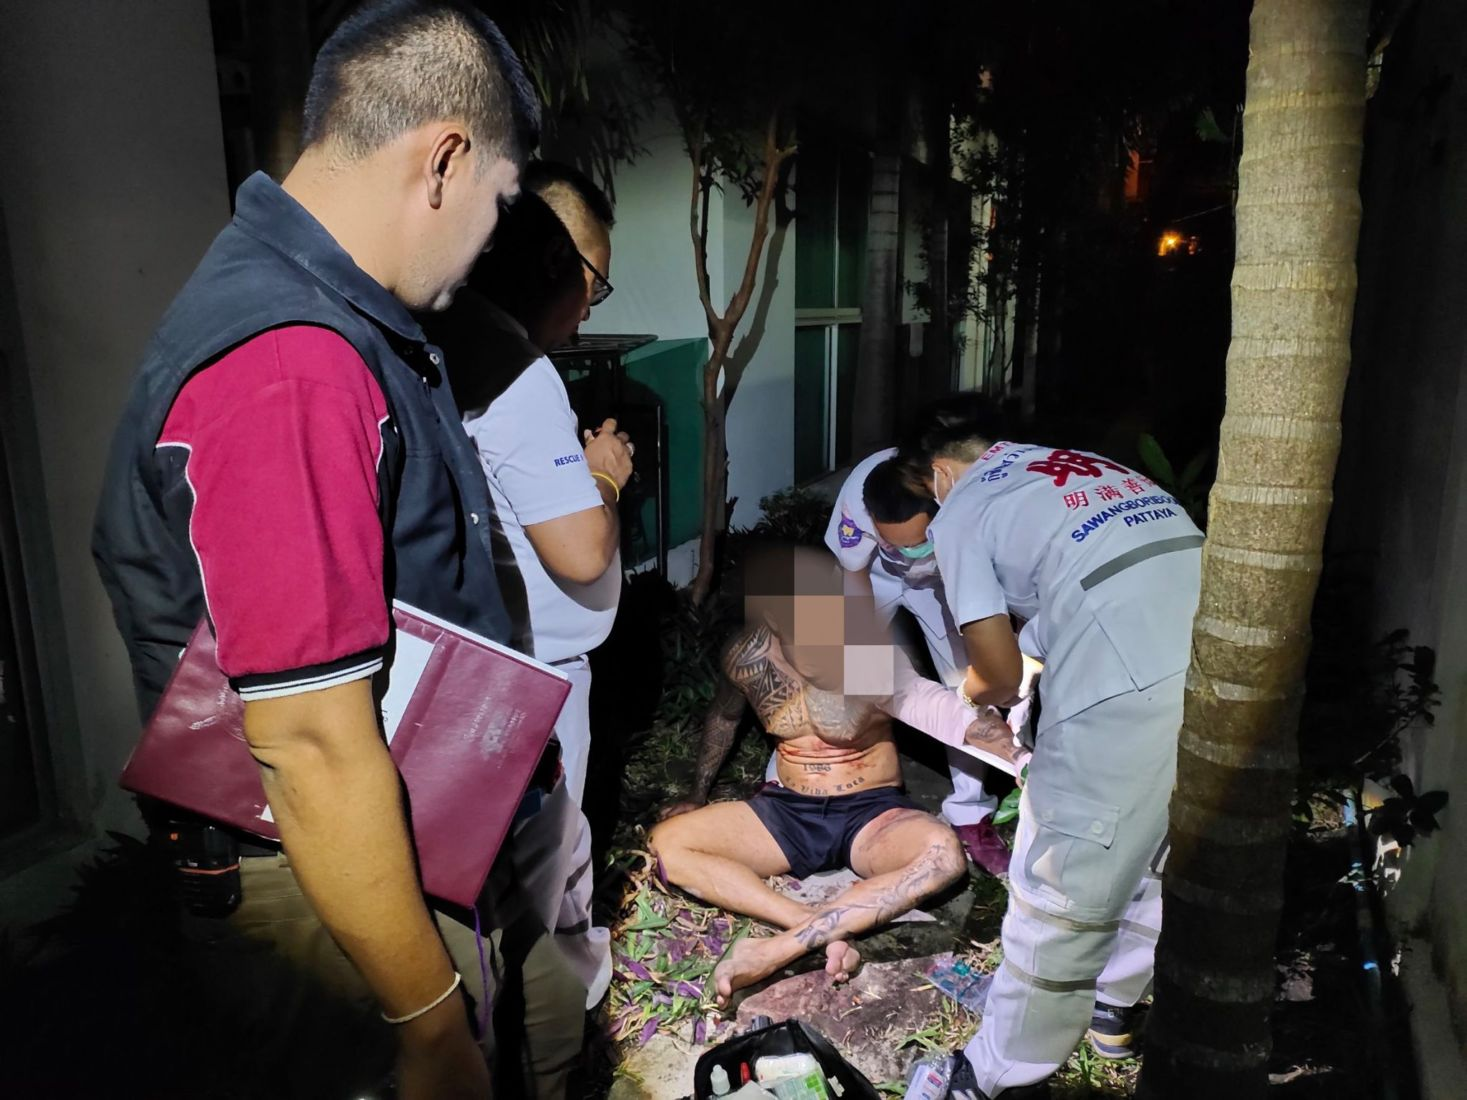 German man dead after jumping from Pattaya condo, refusing medical assistance | News by Thaiger